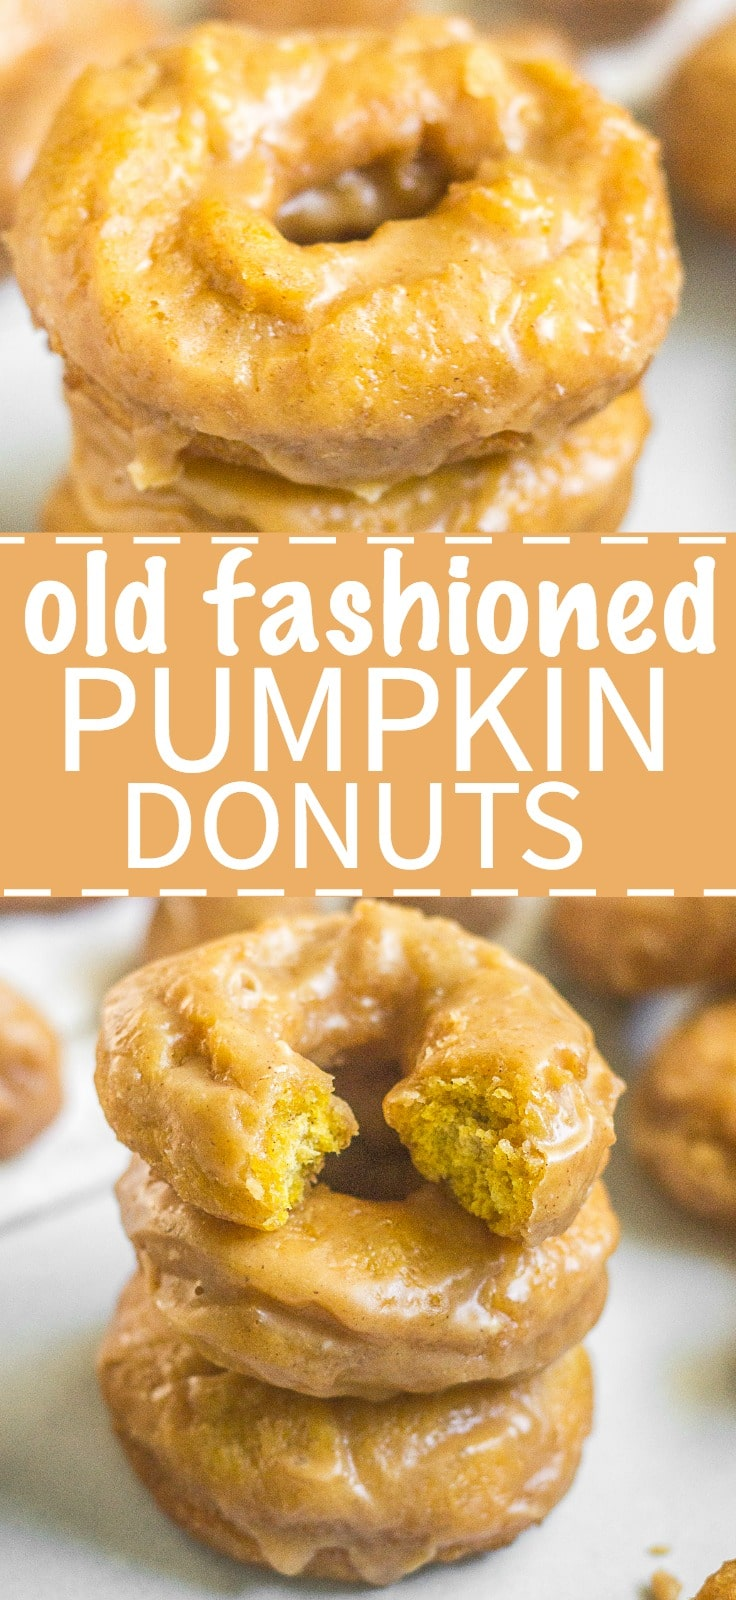 Get ready for these homemade old fashioned pumpkin donuts! They're cake like, filled with pumpkin spice and melt in your mouth. The sour cream and pumpkin puree make for a tasty breakfast recipe. Read more to learn how to make old fashioned pumpkin donuts!